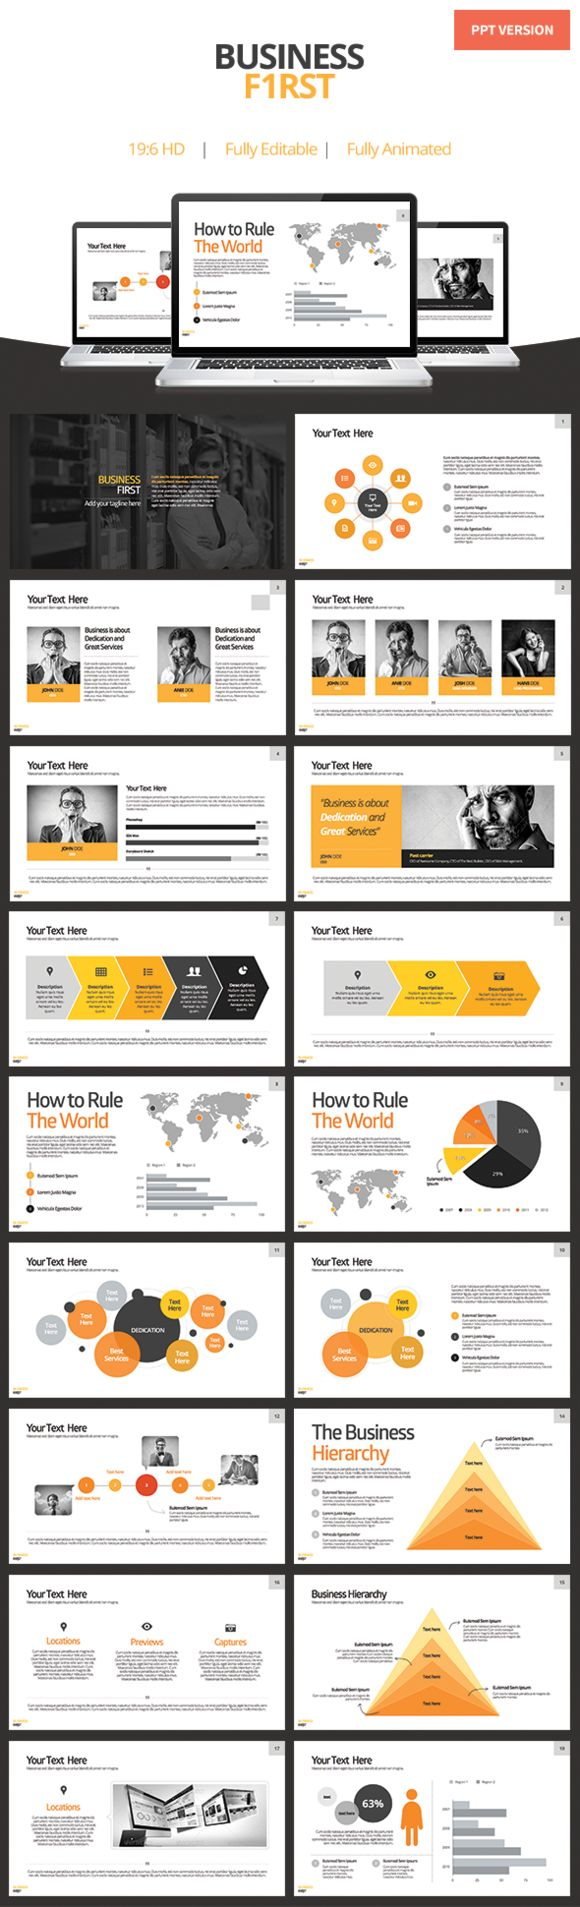 How To Rule The World? Check out Business First - Powerpoint Template by Keynote Market on Creative Market - Only $7.00!!!